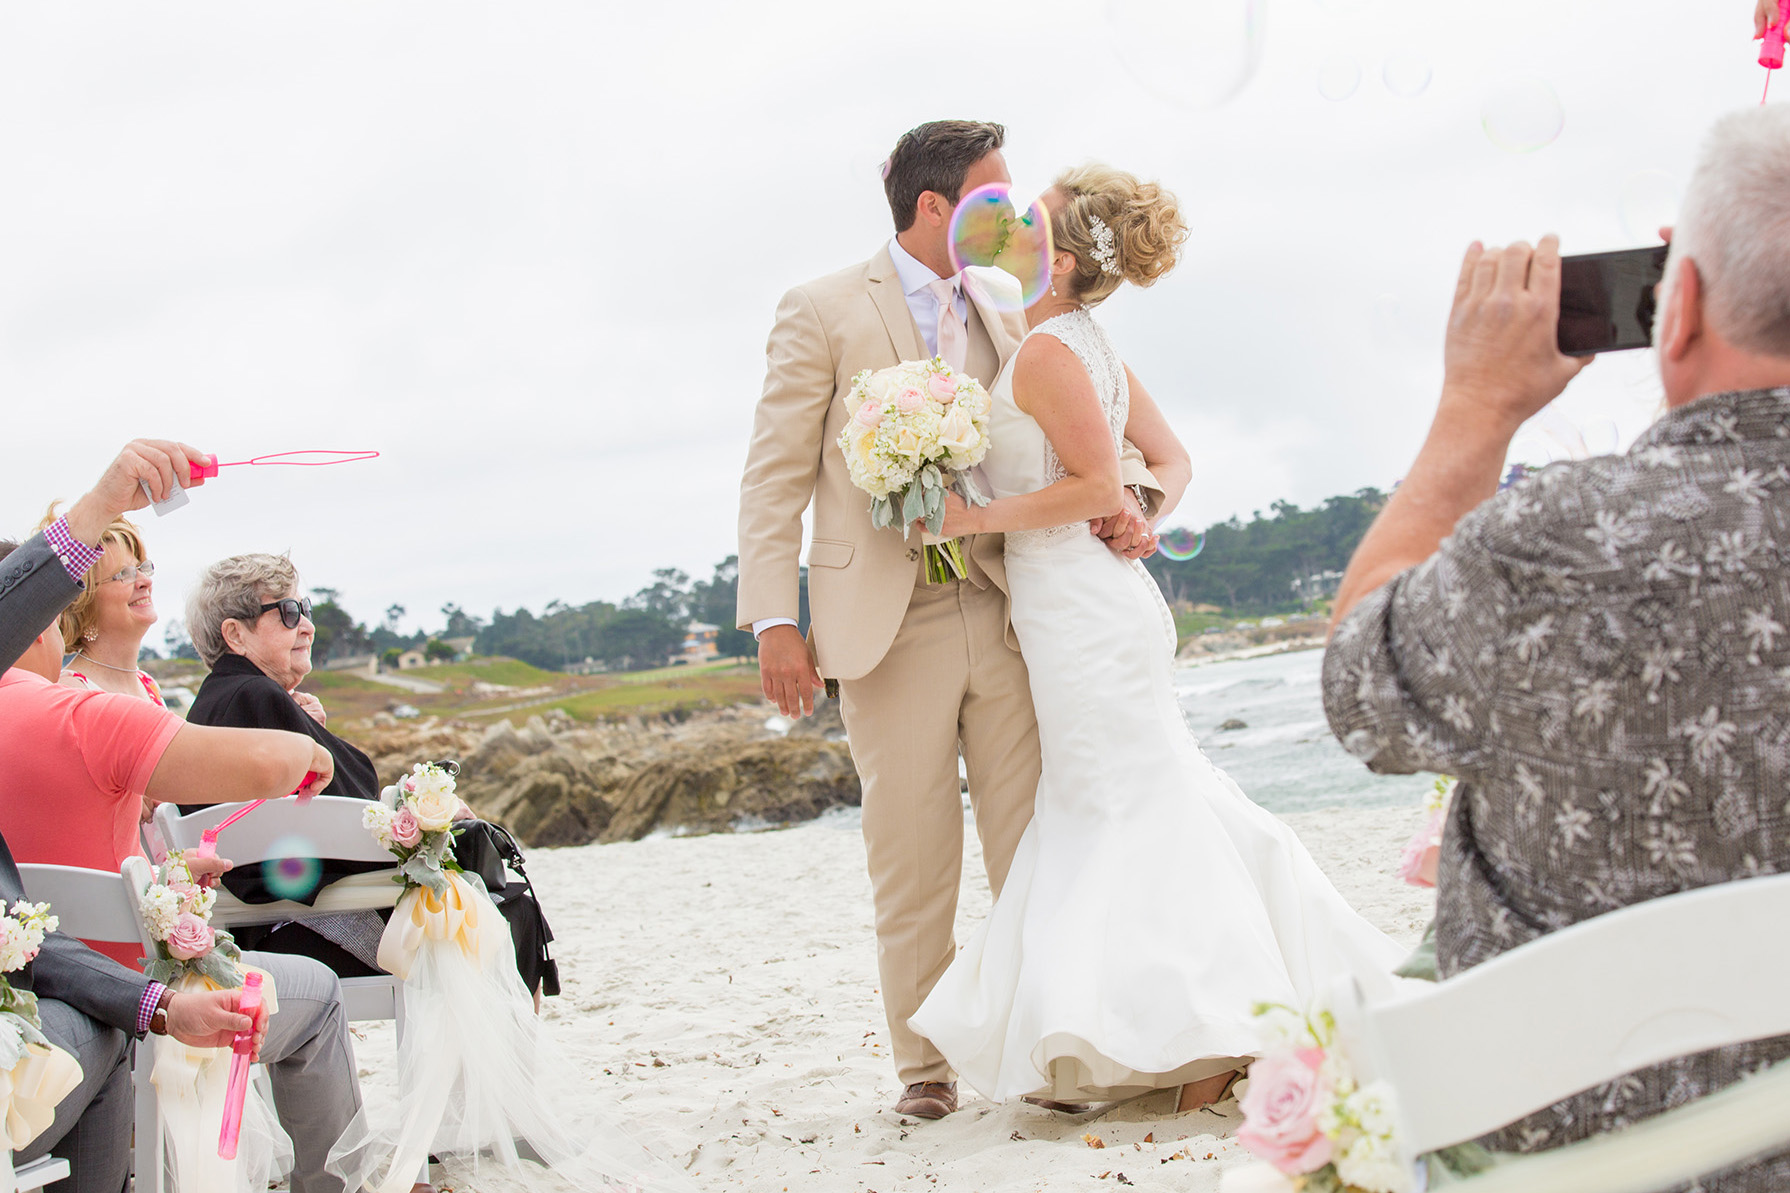 Tips for Brides to Get the Best Wedding Photographs